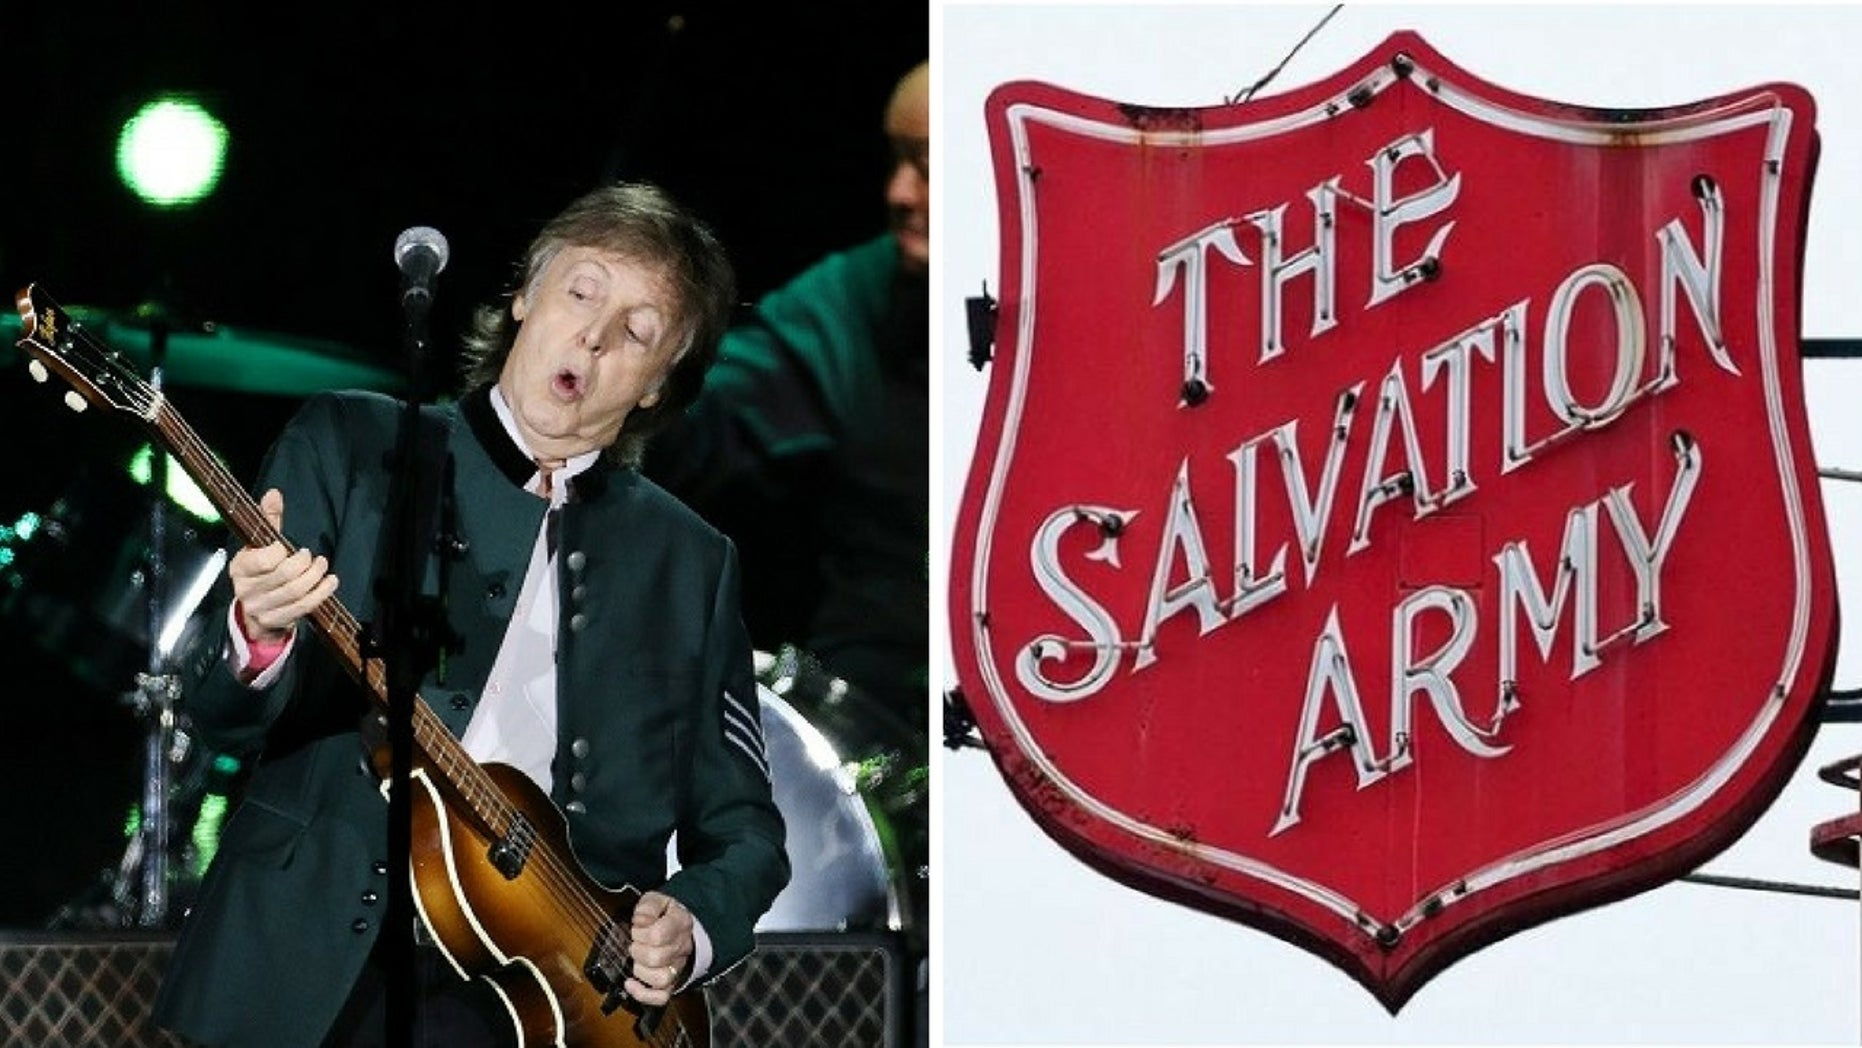 The Australian Salvation Army has come under fire for donated Paul McCartney tickets.